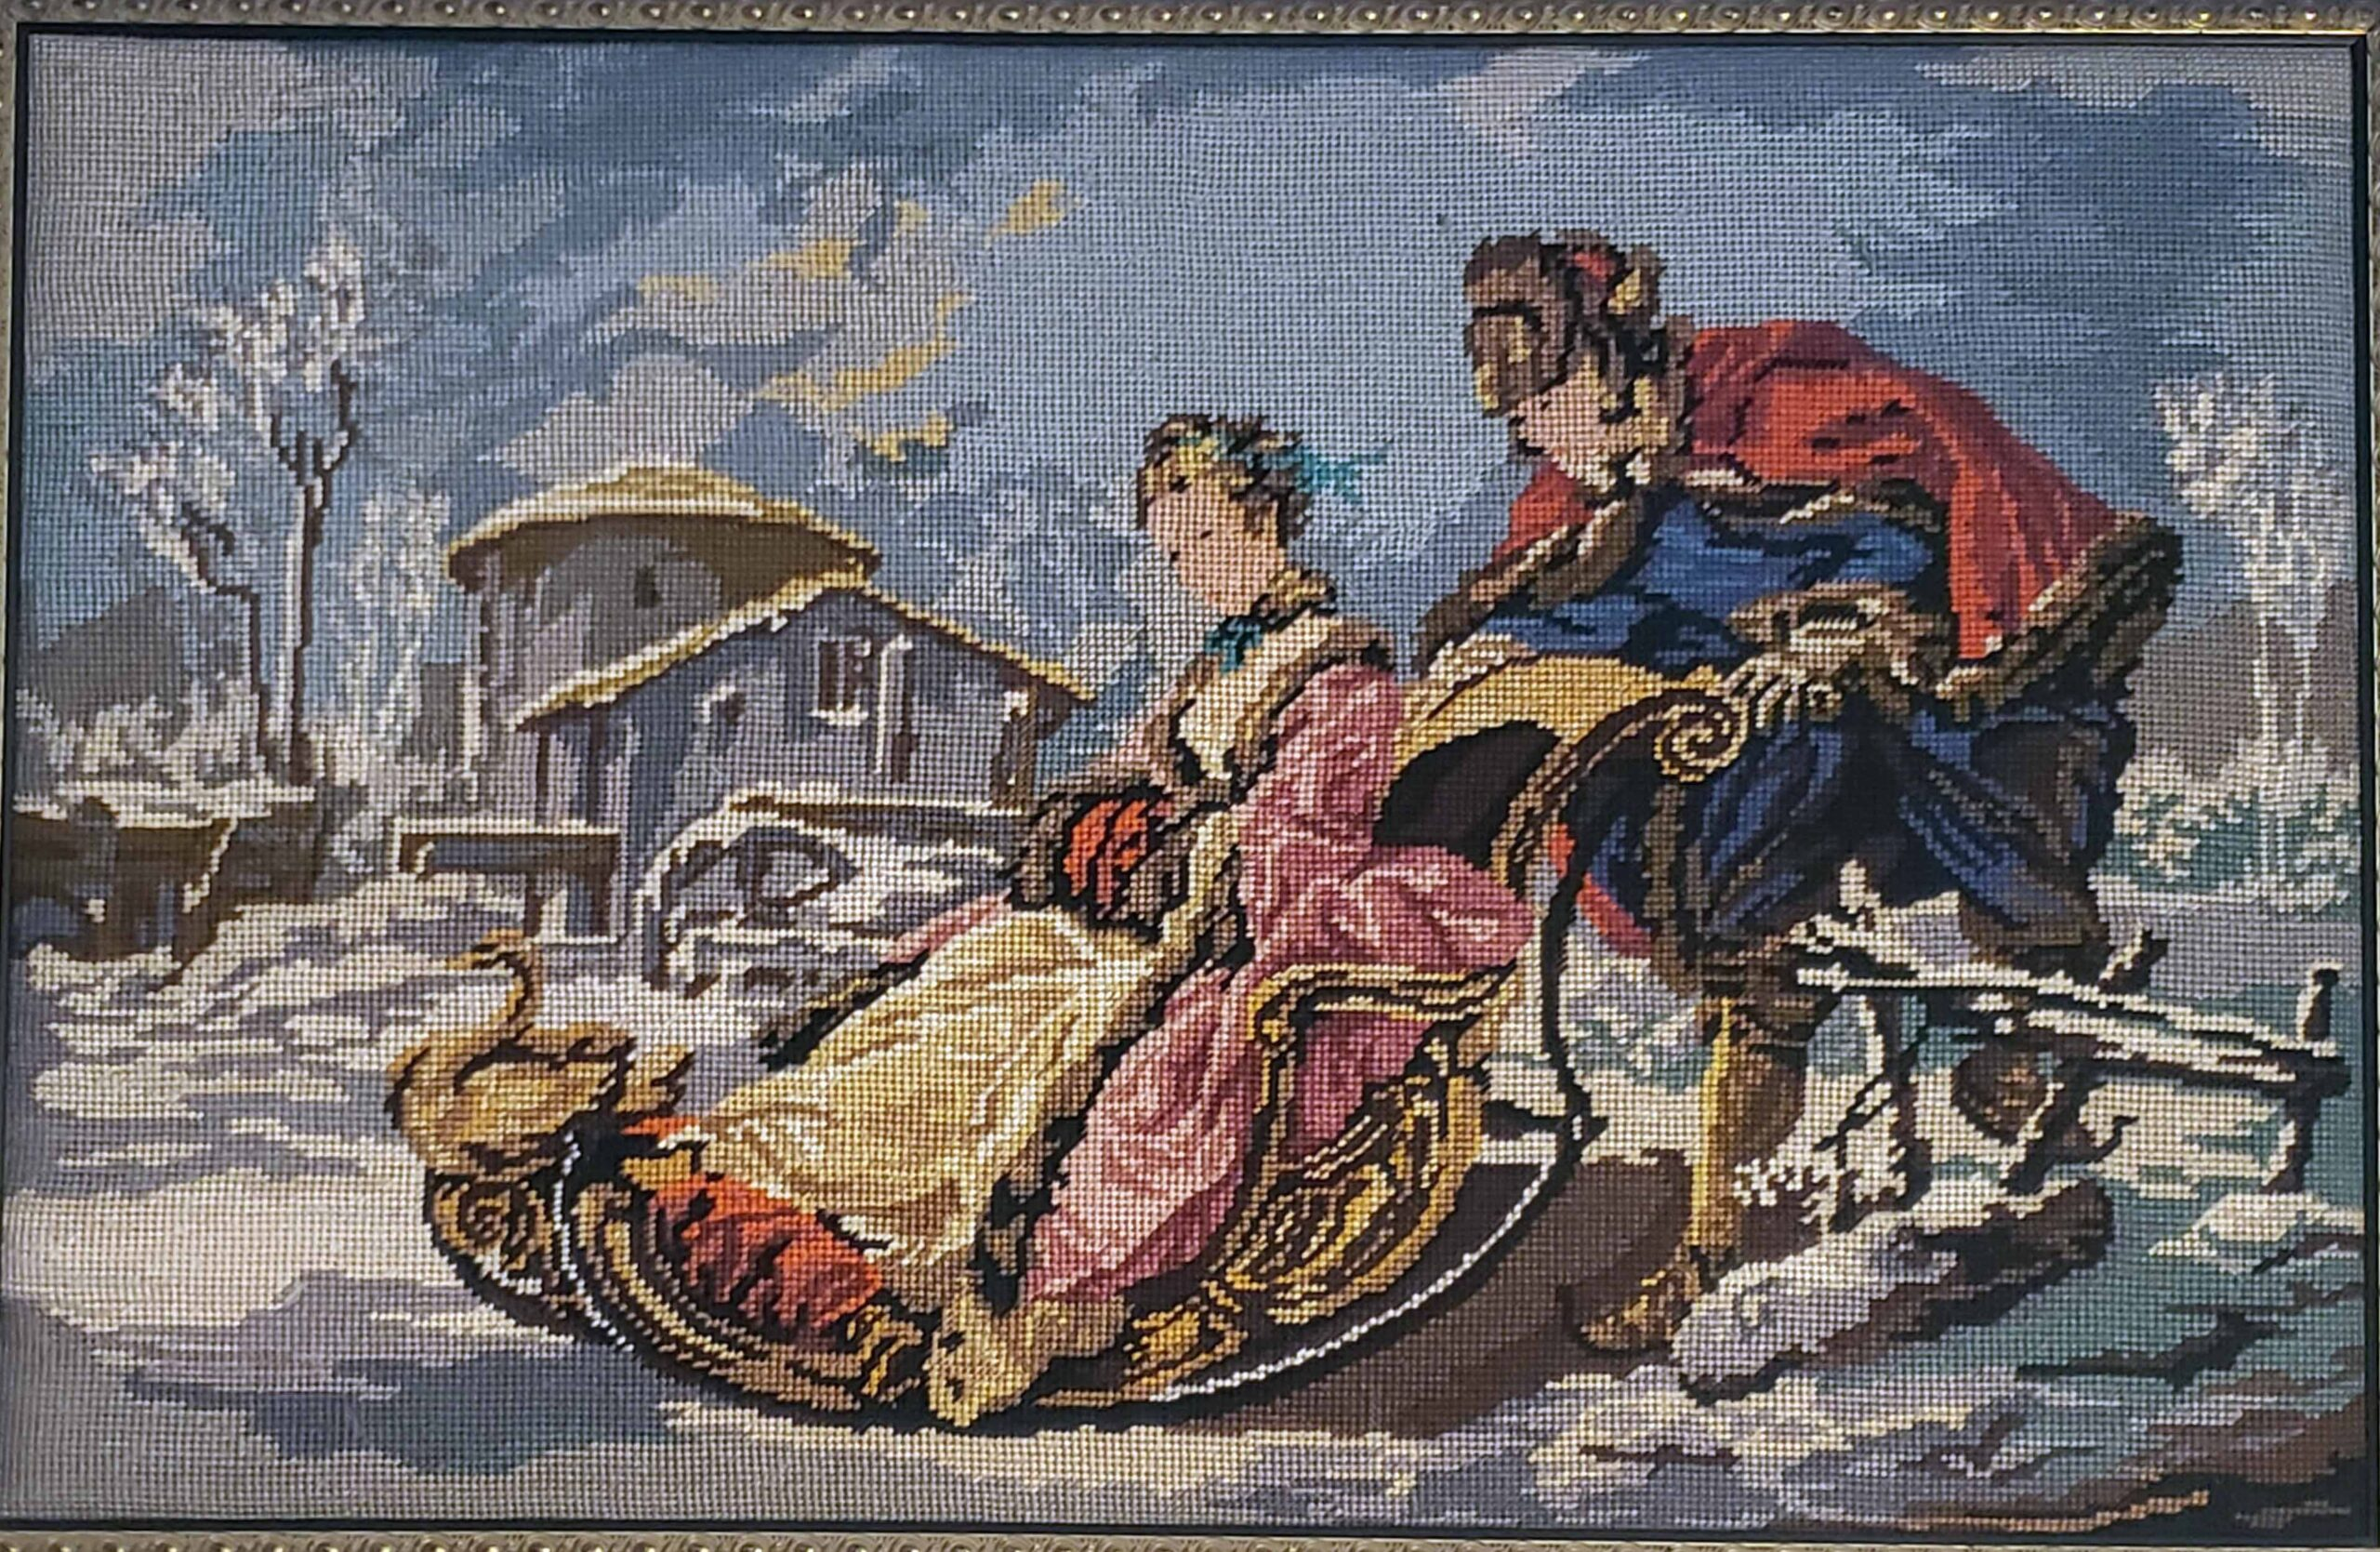 tapestry showing a winter scene of a man pushing a woman on a sleigh